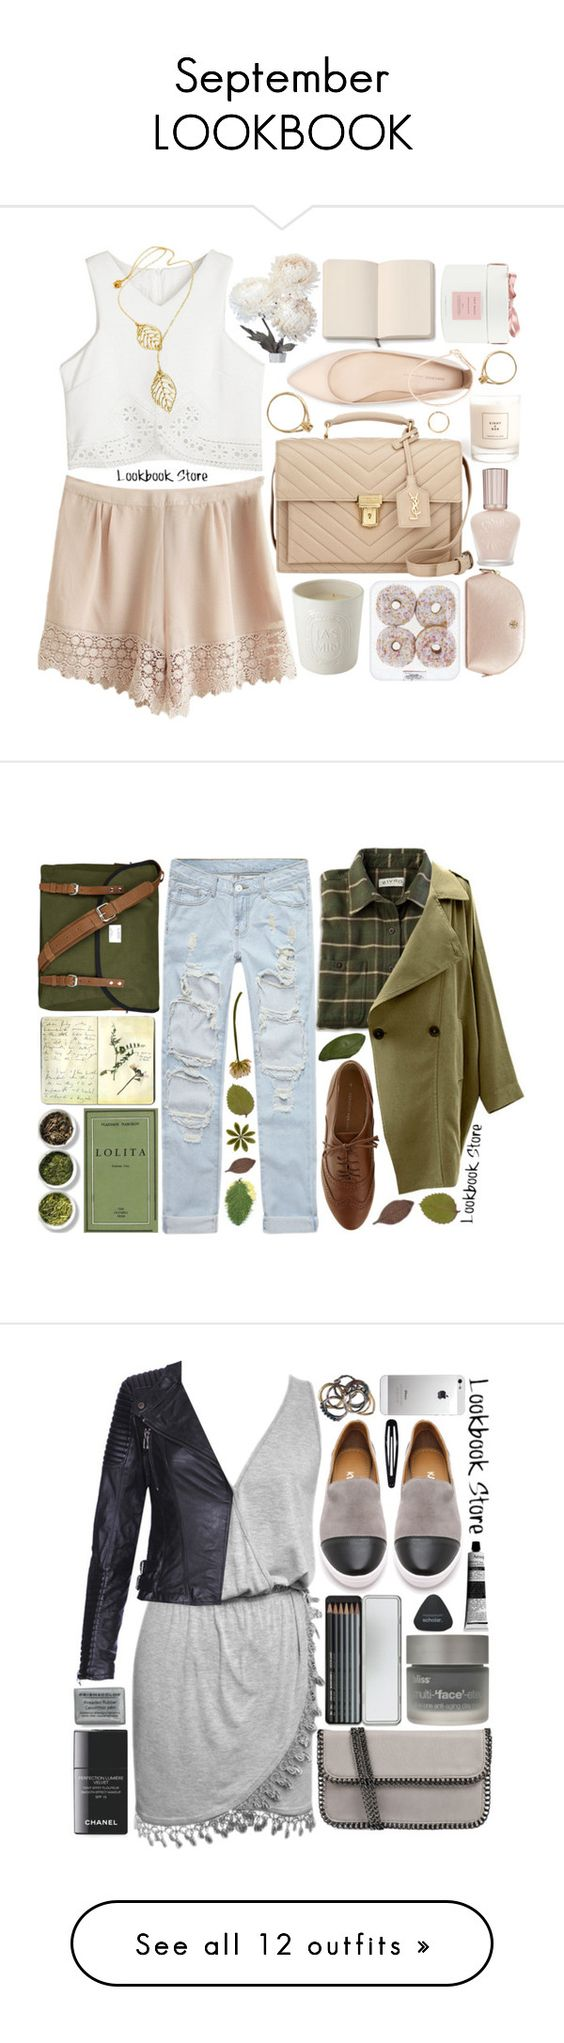 """September LOOKBOOK"" by strayalley ❤ liked on Polyvore featuring Eight & Bob, Yves Saint Laurent, Diptyque, Iosselliani, Moleskine, Zara, True Grace, Tory Burch, Paul & Joe and Tea Collection"